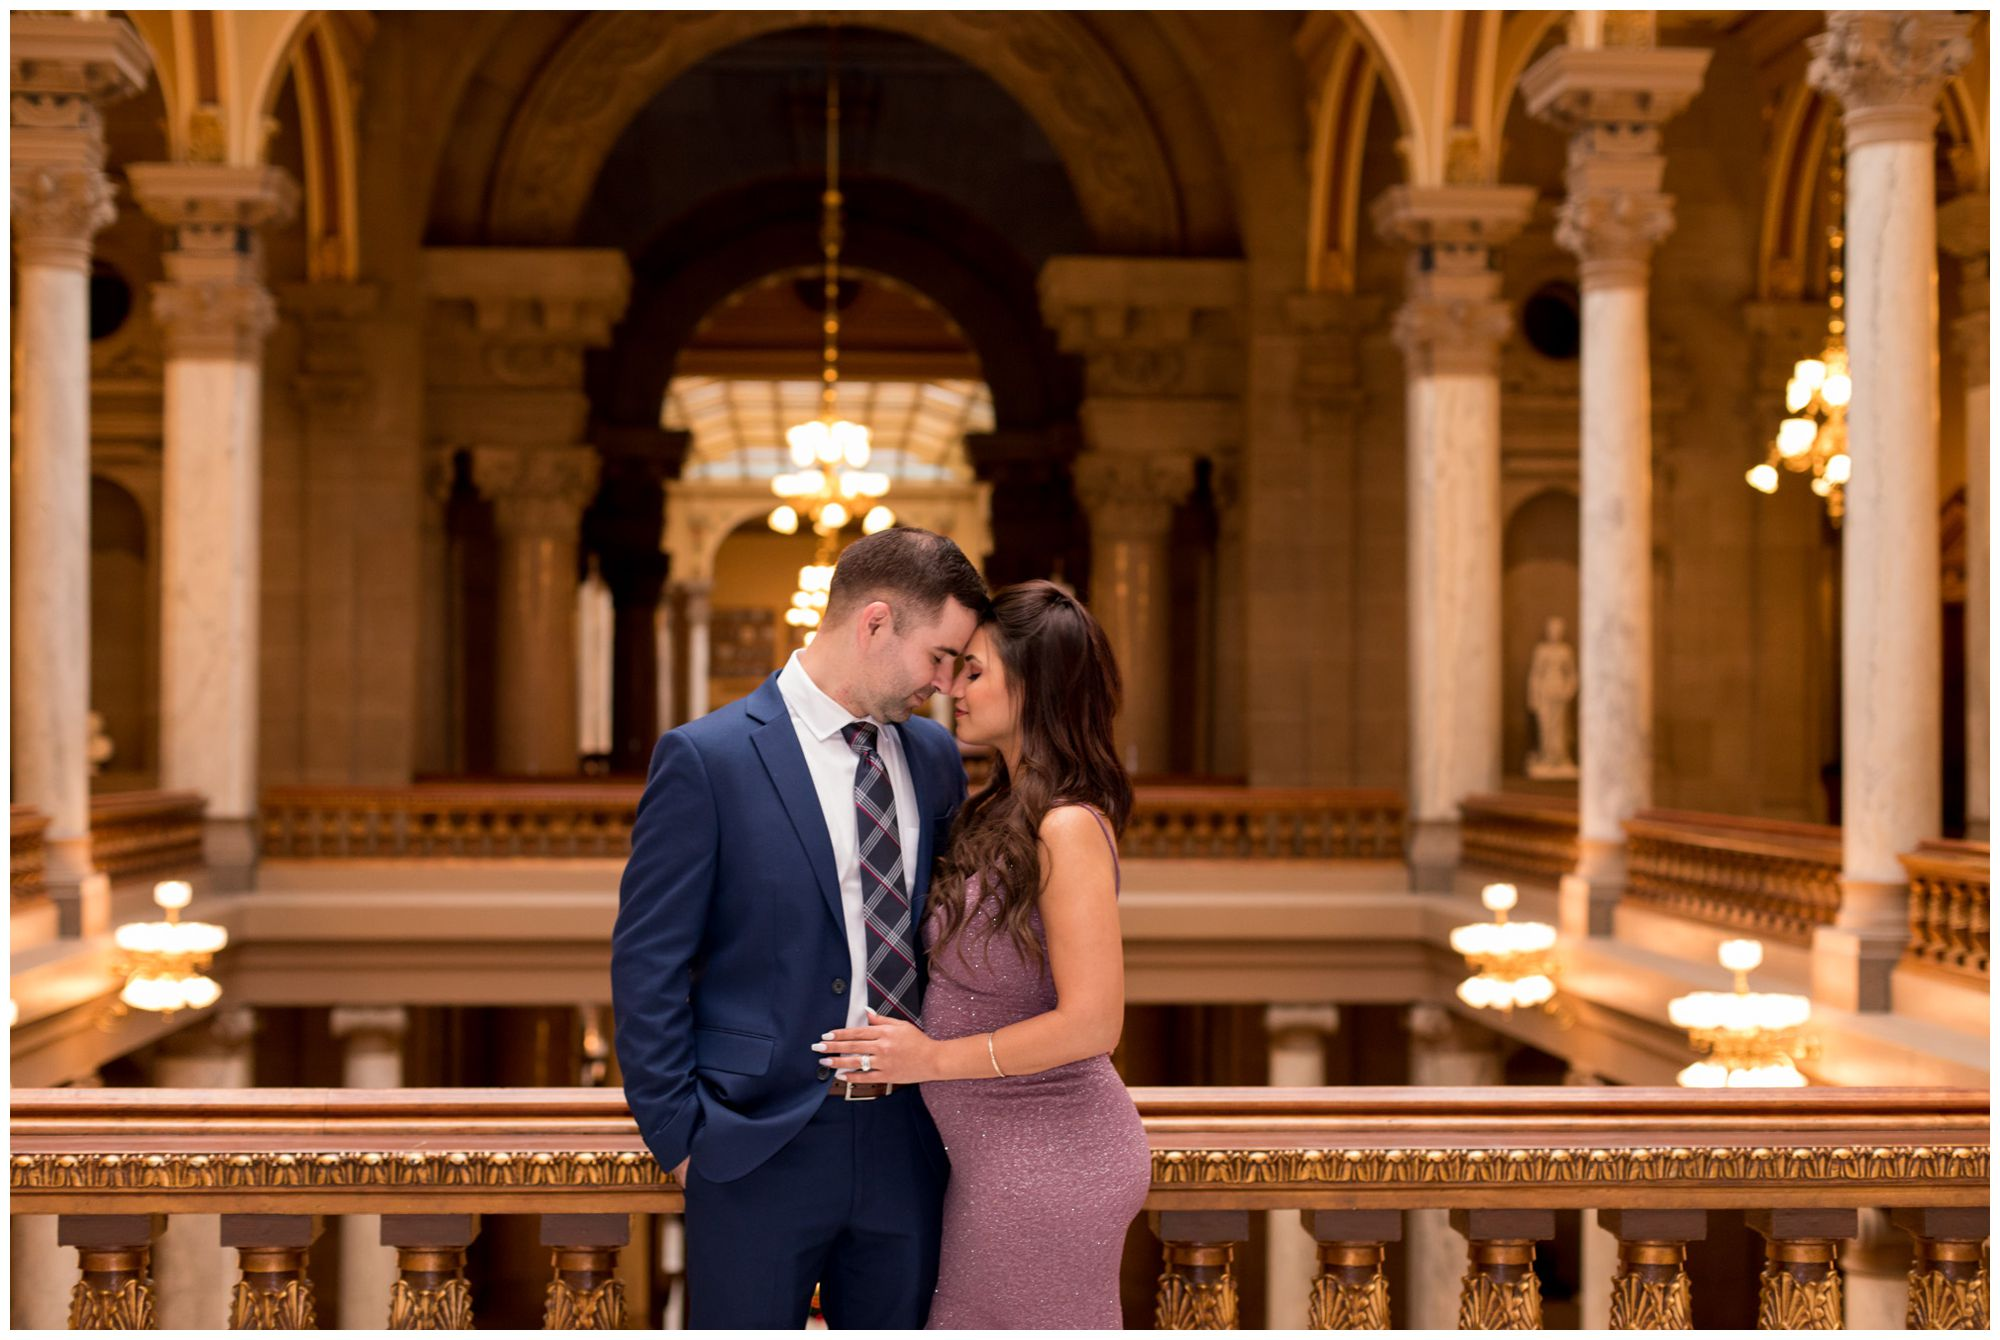 downtown Indy elopement at Indiana Statehouse